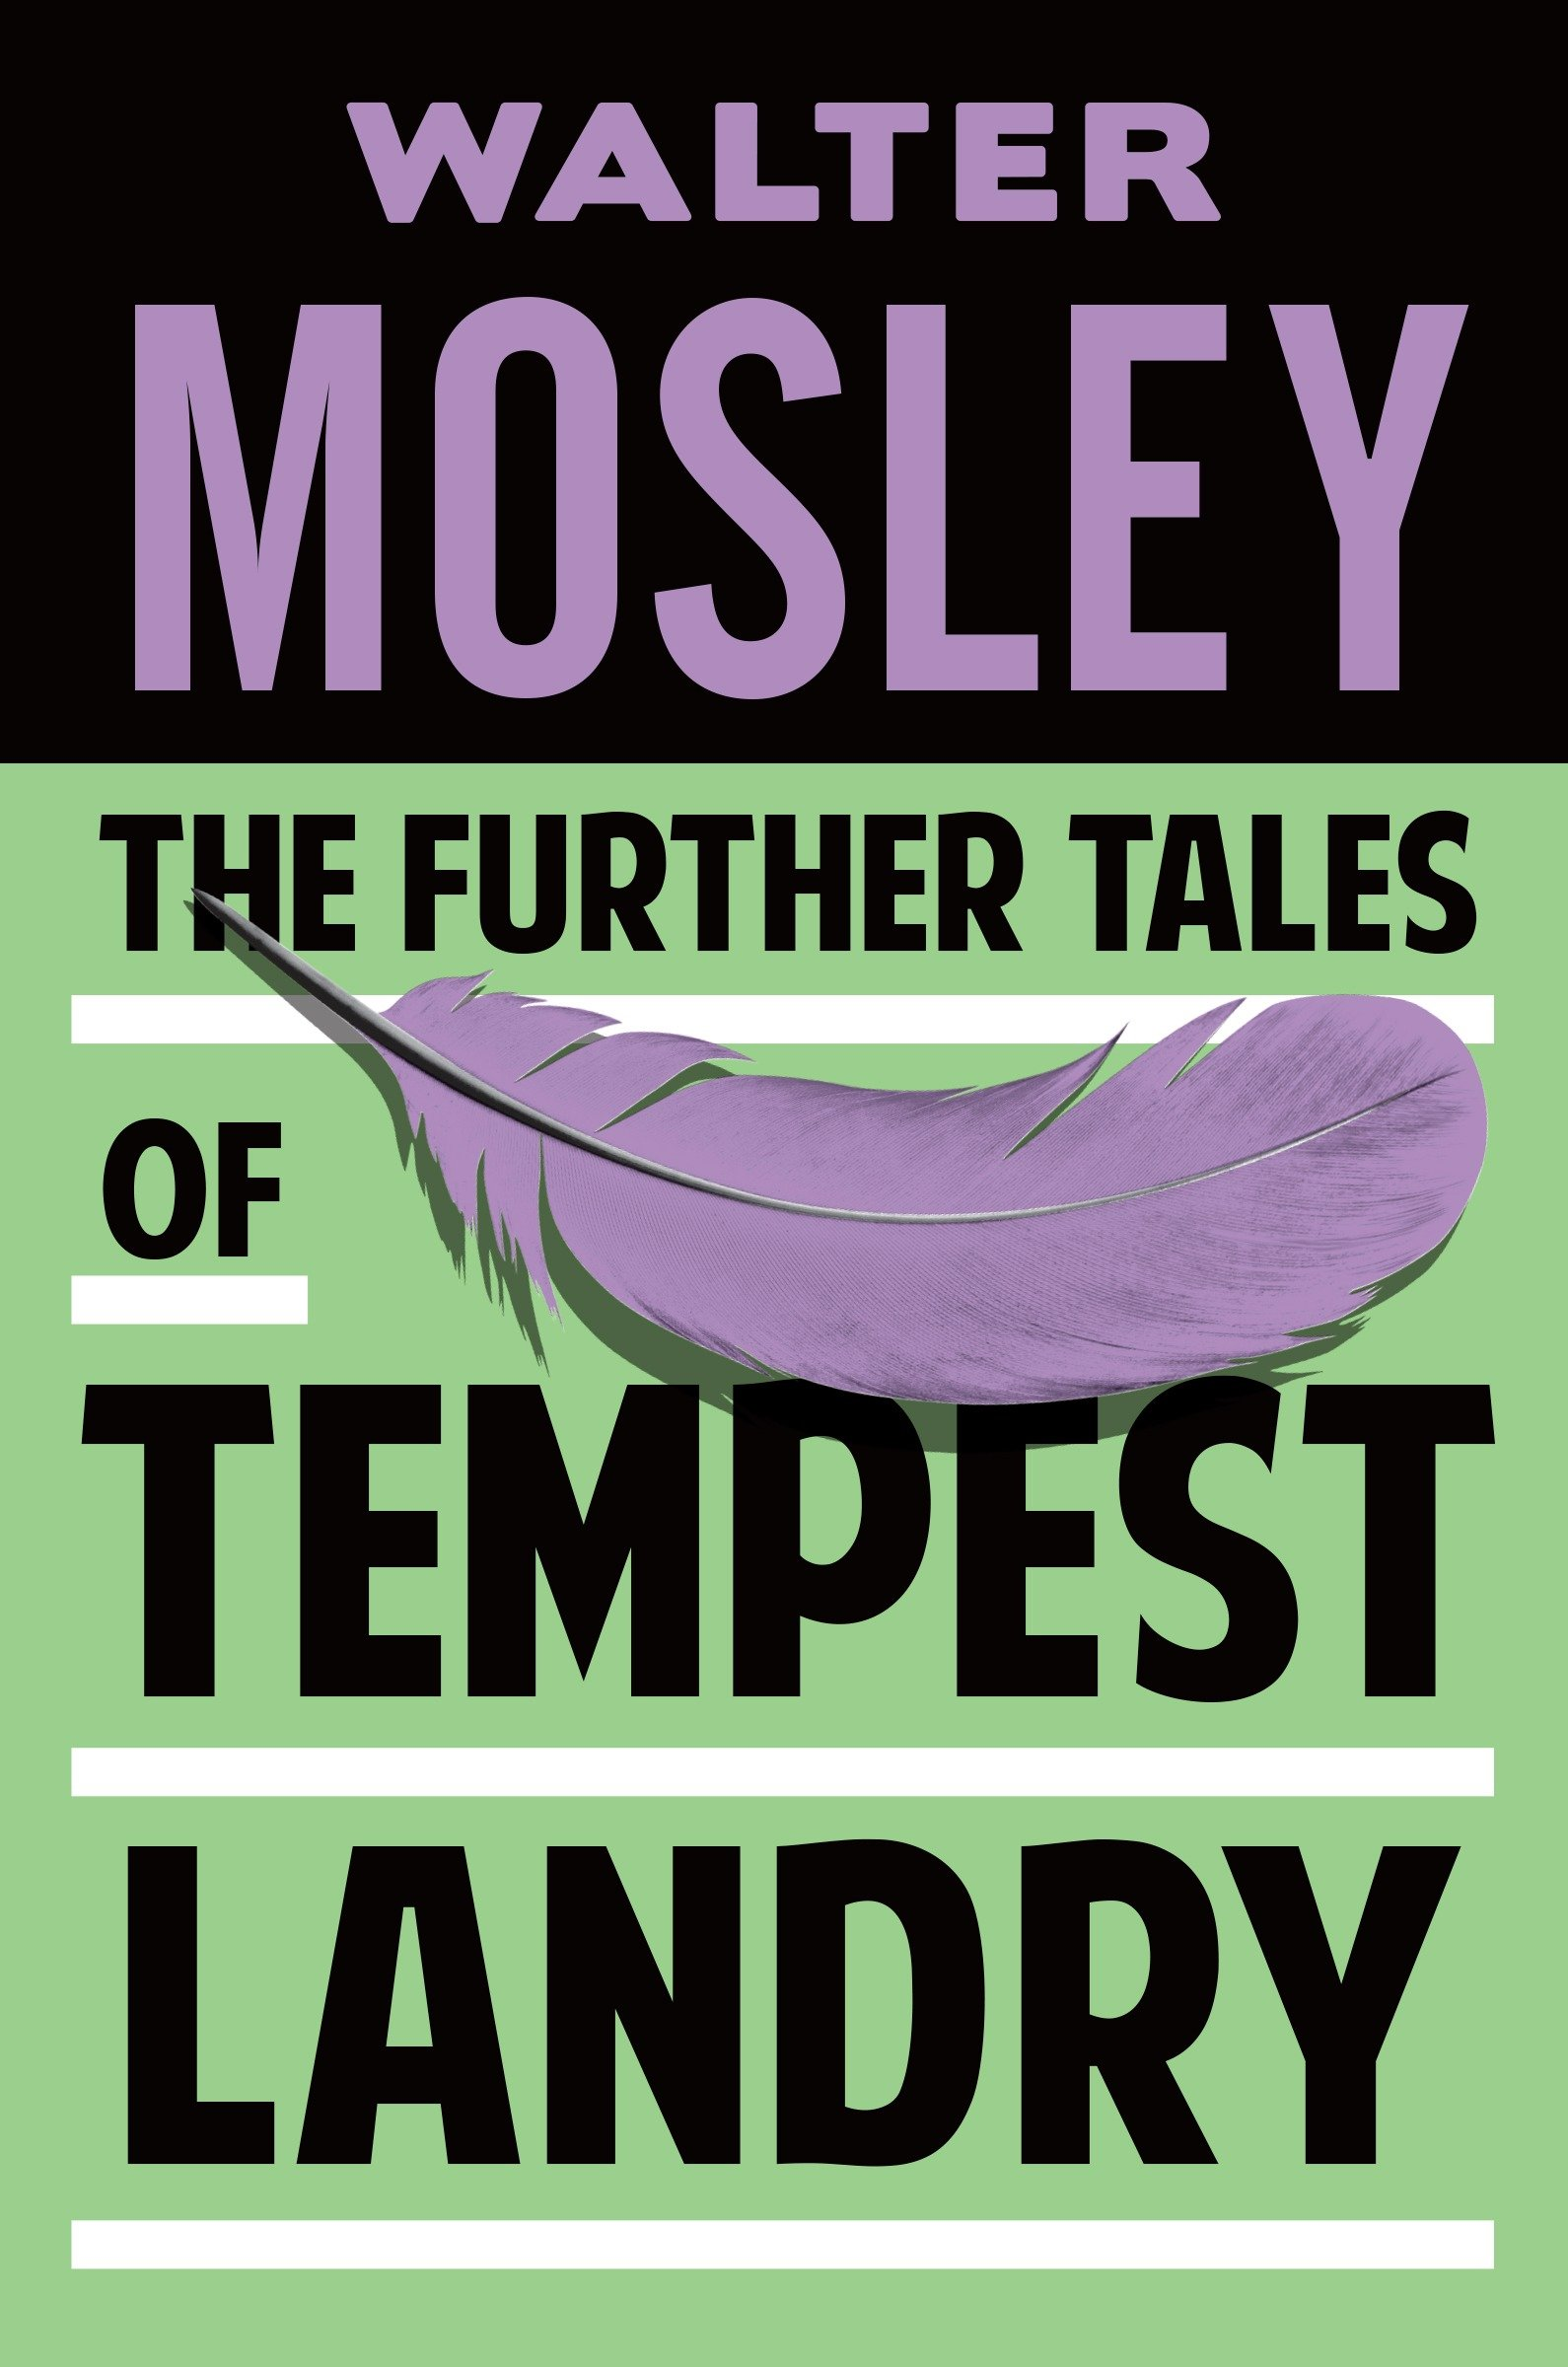 The Further Tales of Tempest Landry